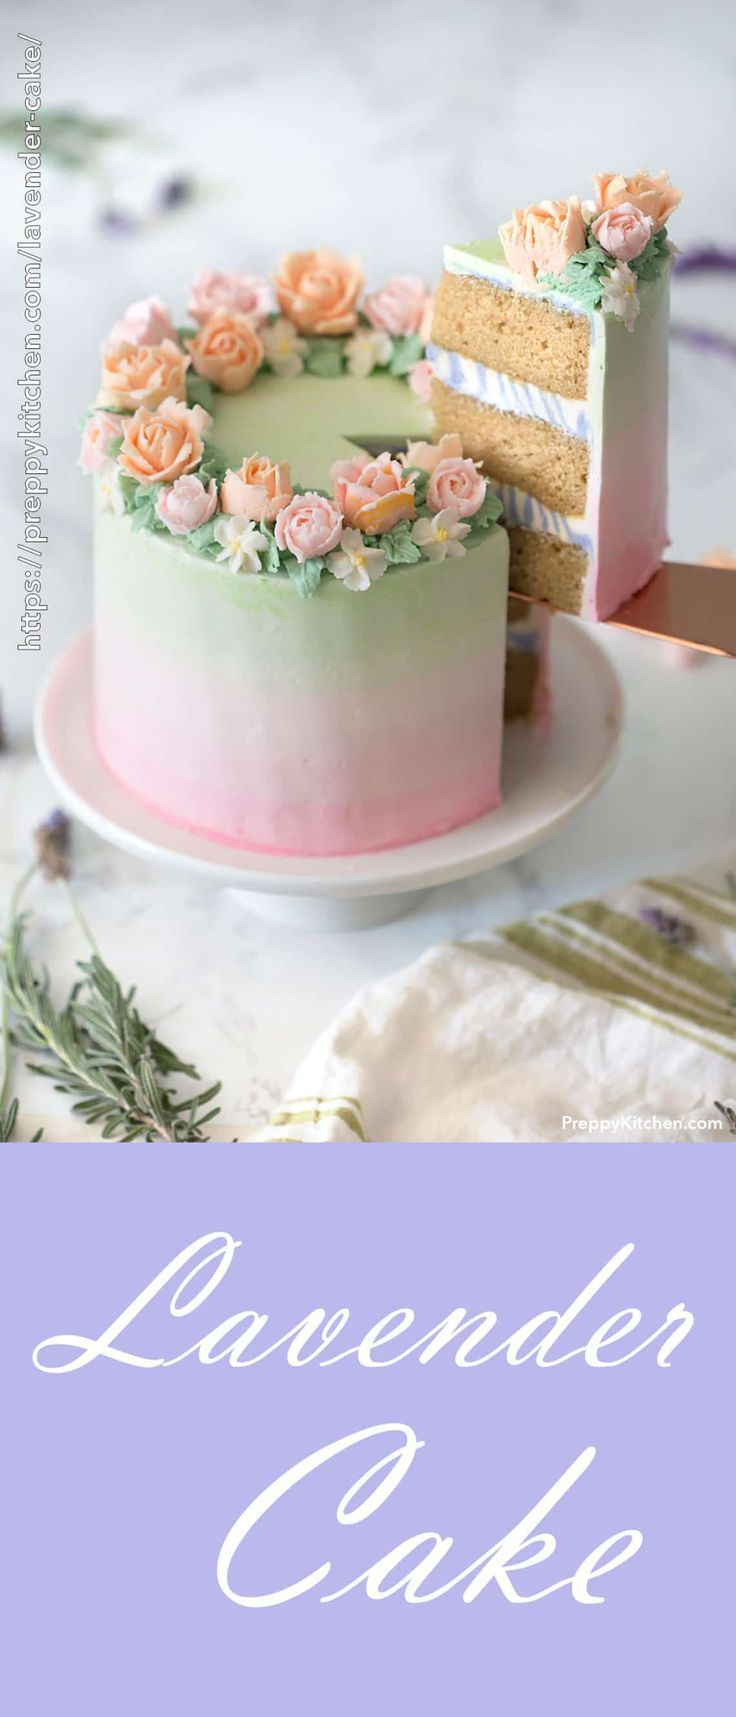 Lavender Cake - Preppy Kitchen